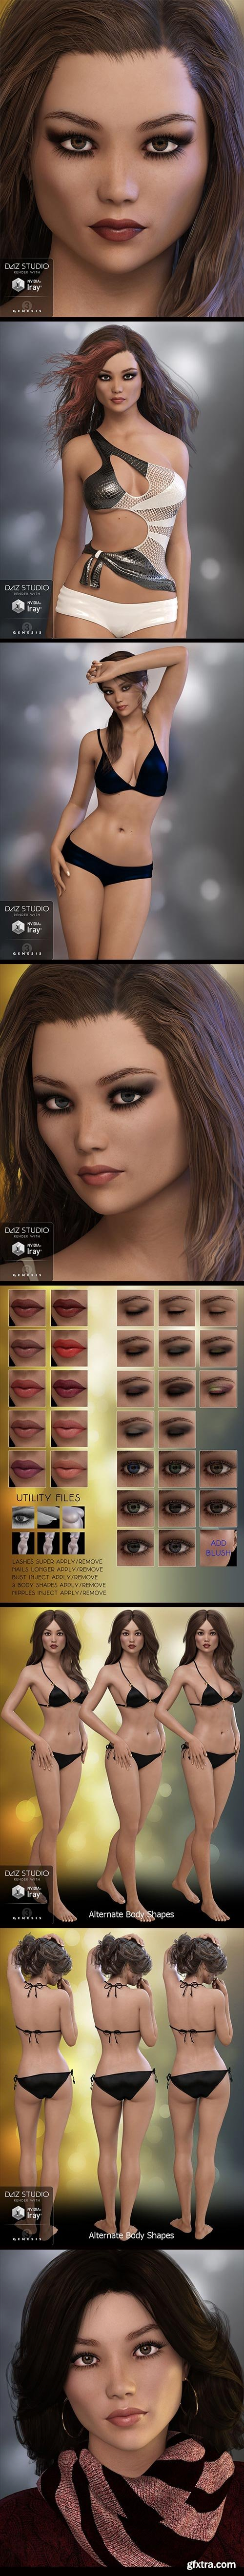 DAZ3D - Lorilynn for Genesis 3 Female 23349